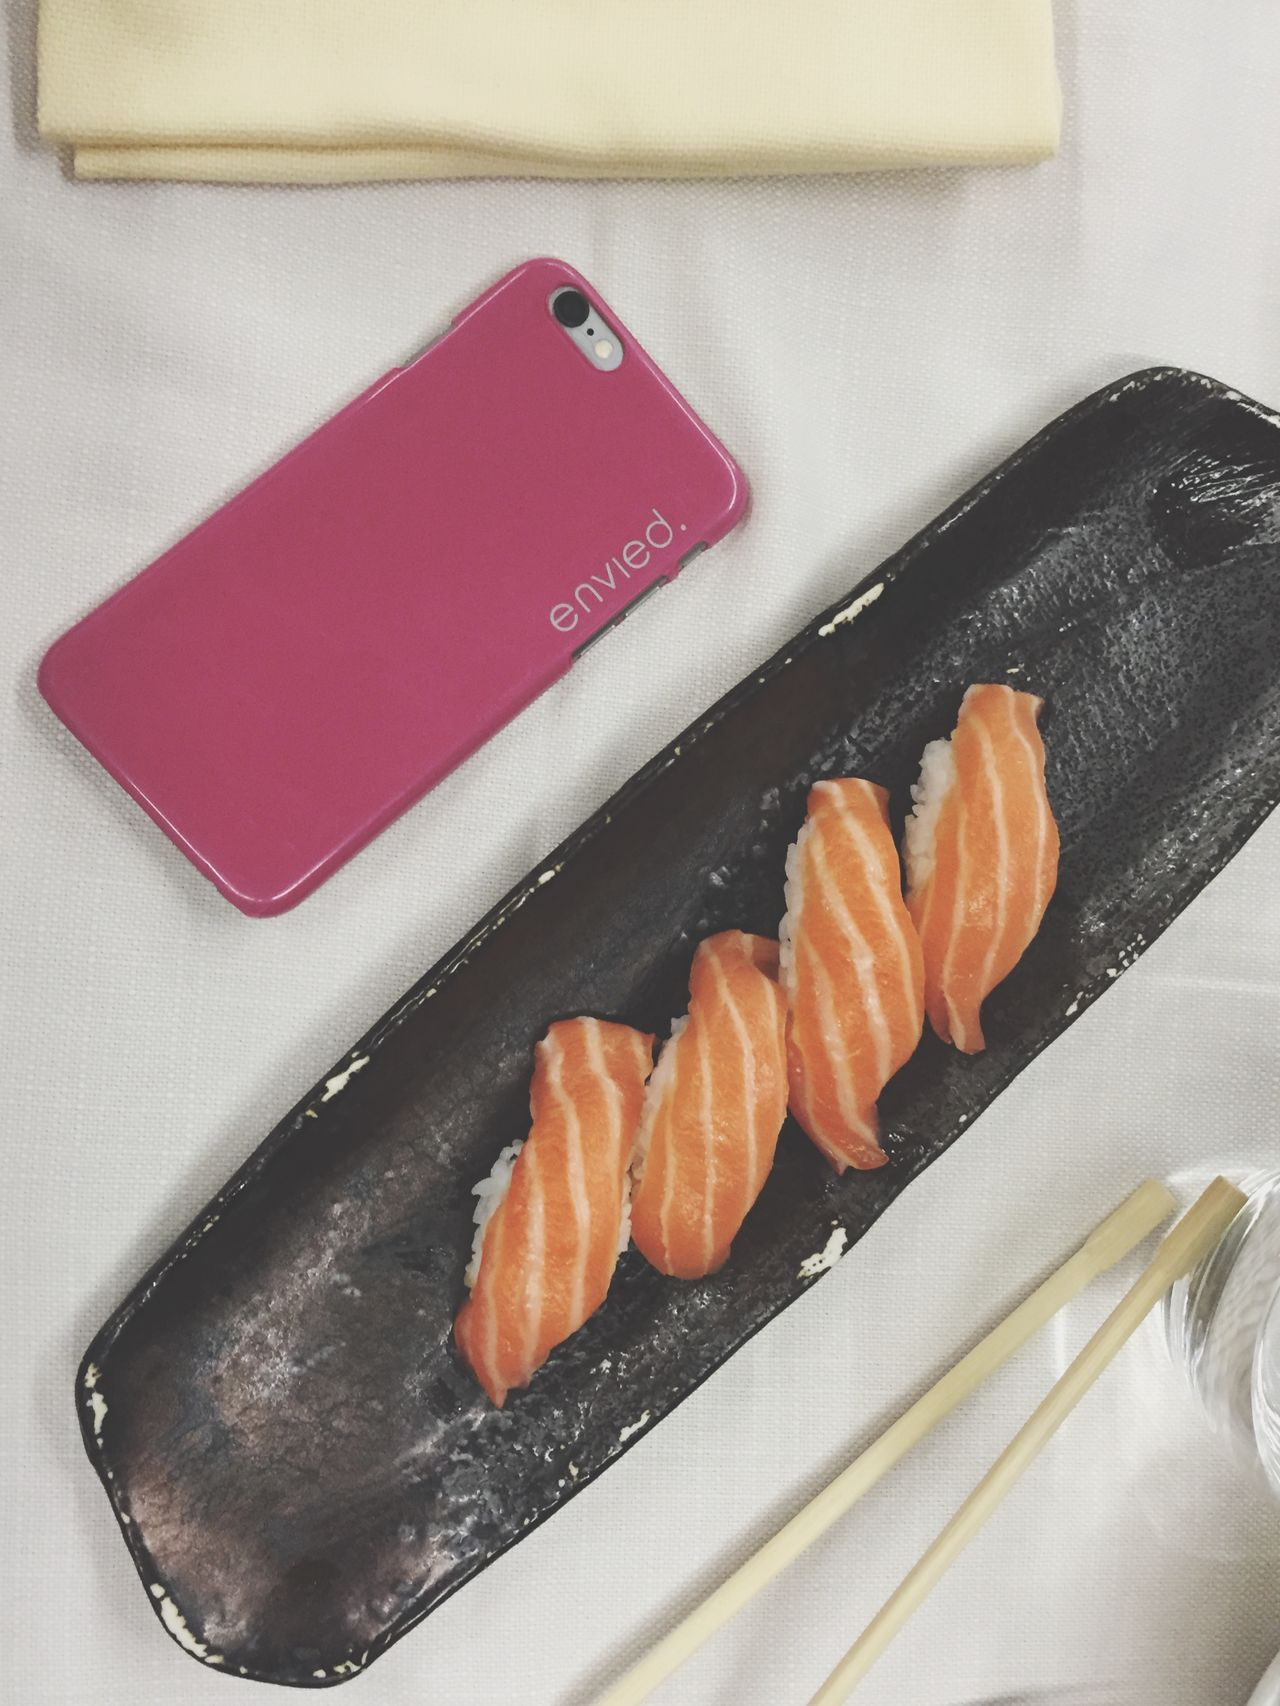 Discovering semplicity with a simple meal as sushi is. Envied Enviedcover Enviedcase Envied.it Enviedbrand Sushi Padua Simplicity Check This Out